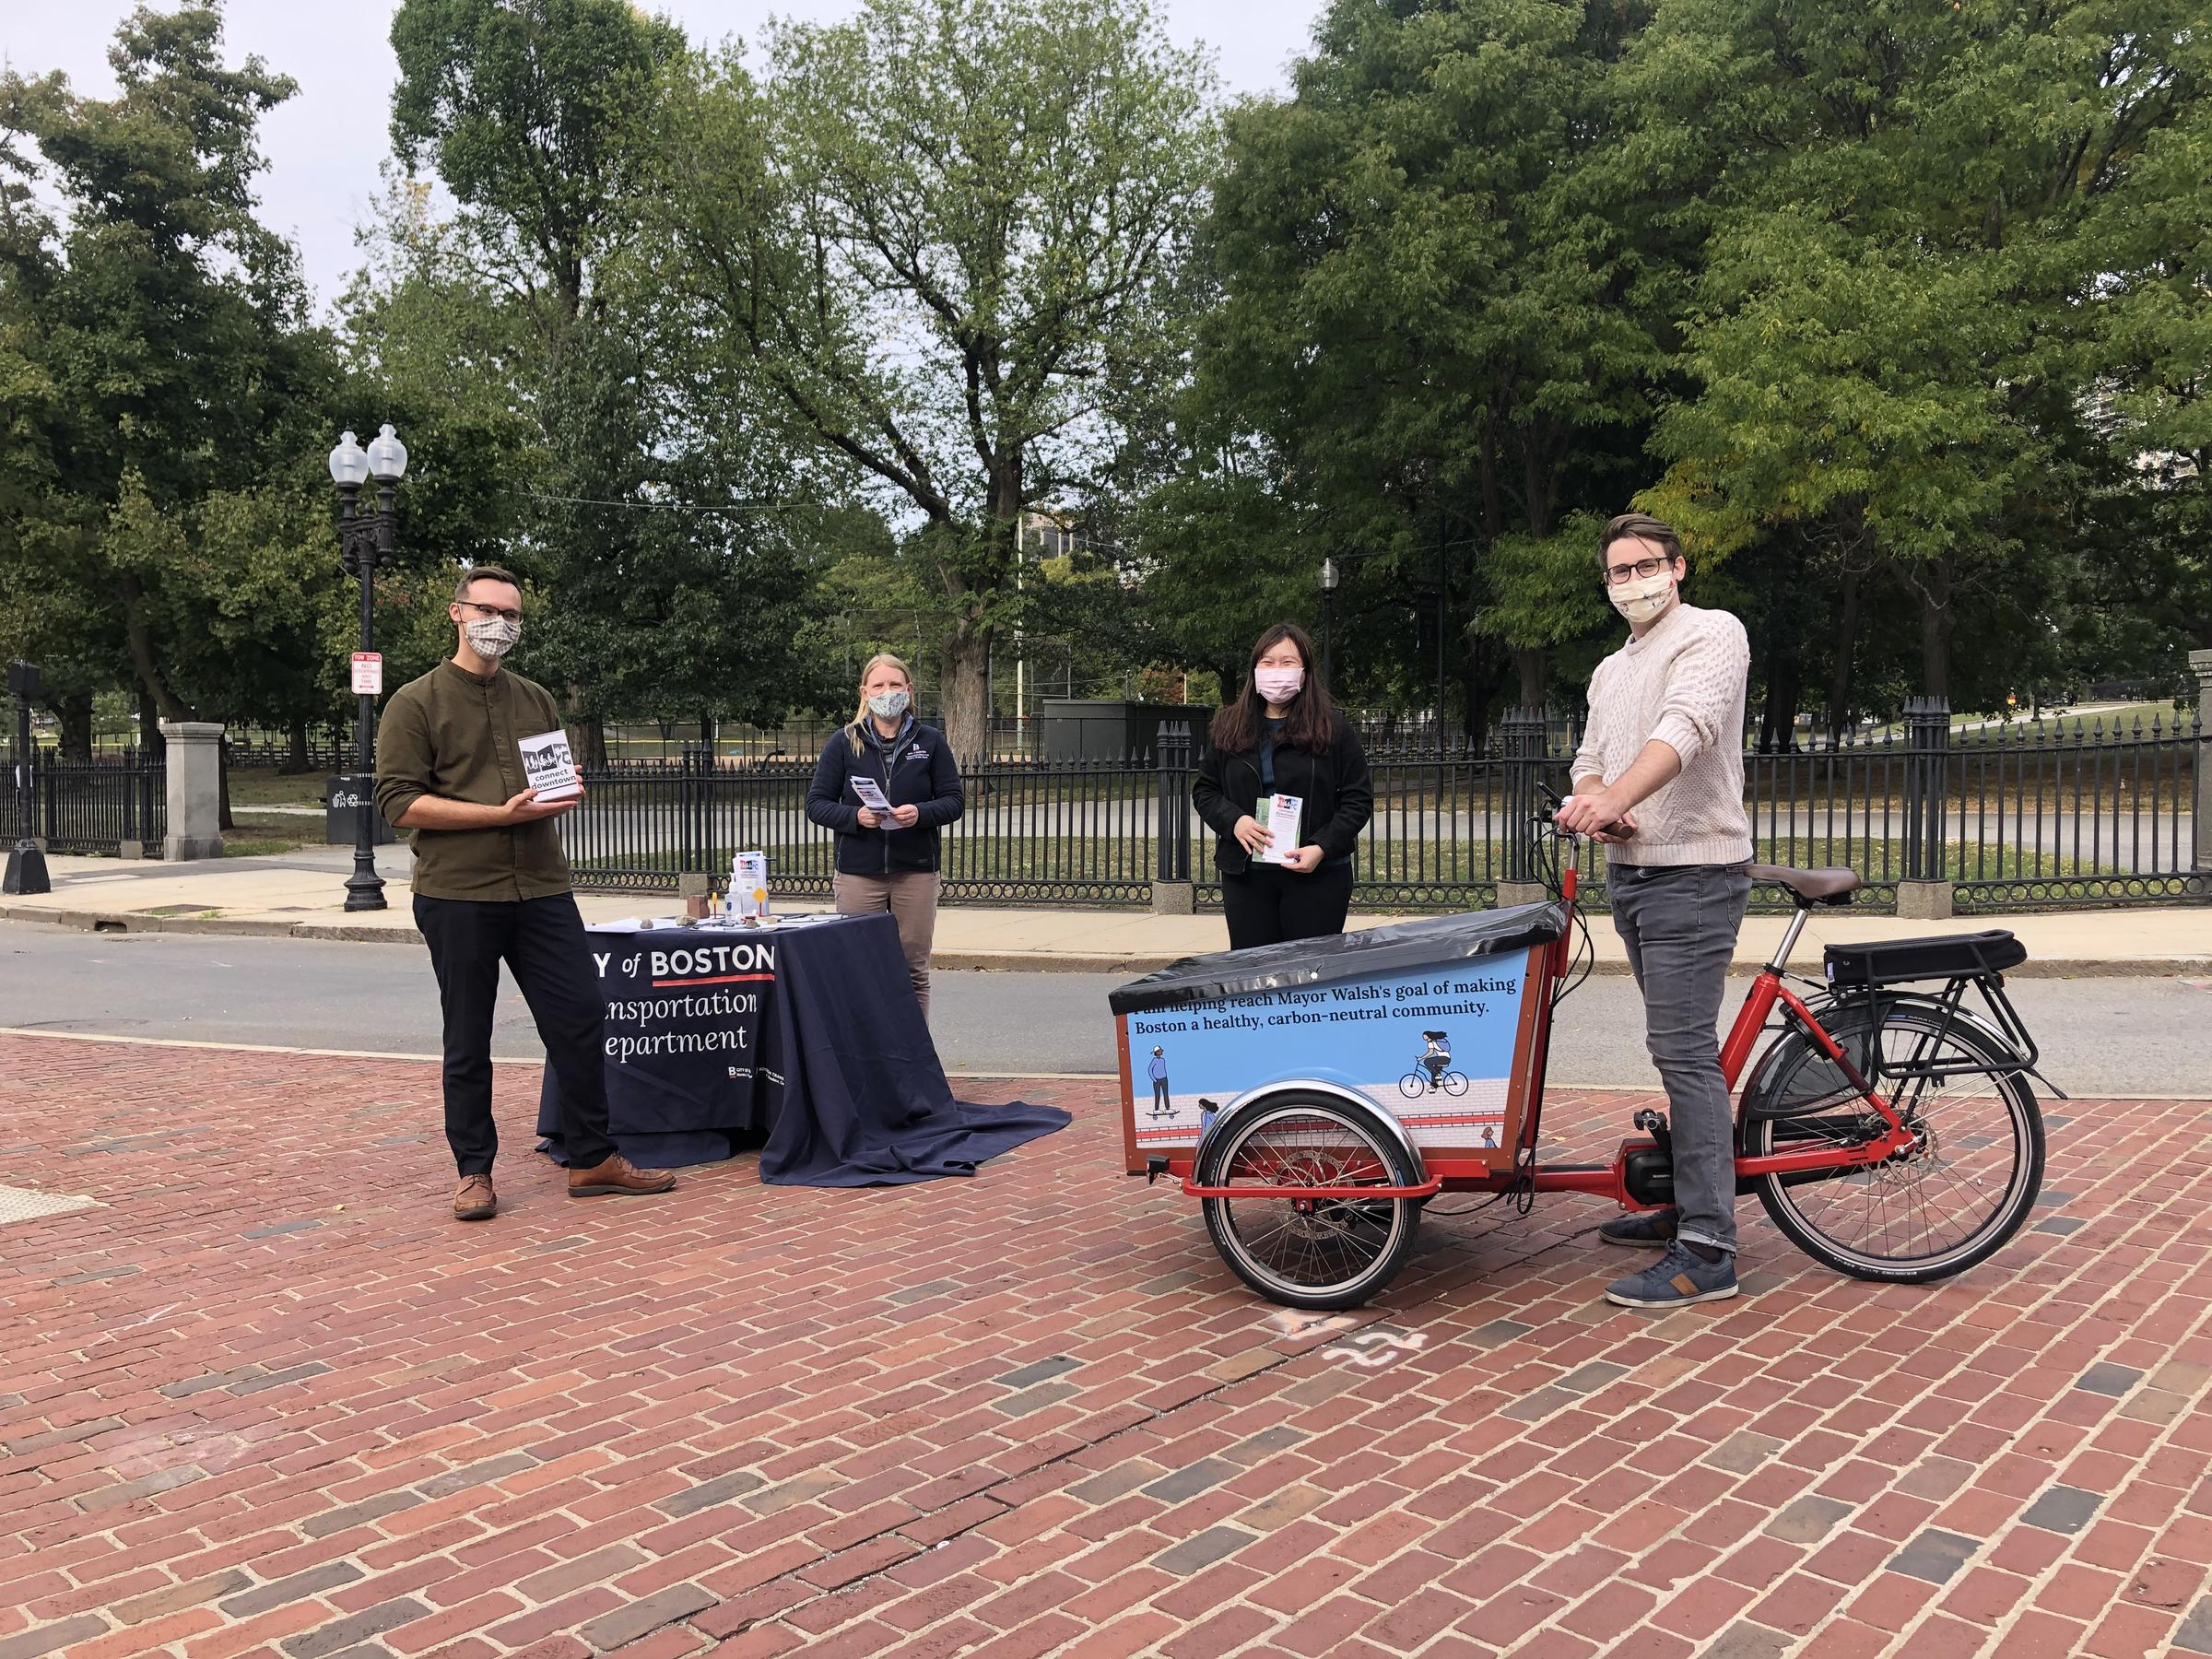 Four people wearing face coverings stand outside on a traffic island. Three people are holding brochures. A table has more materials and is covered with a blue tablecloth that says City of Boston Transportation department. One person stands near a cargo bike.